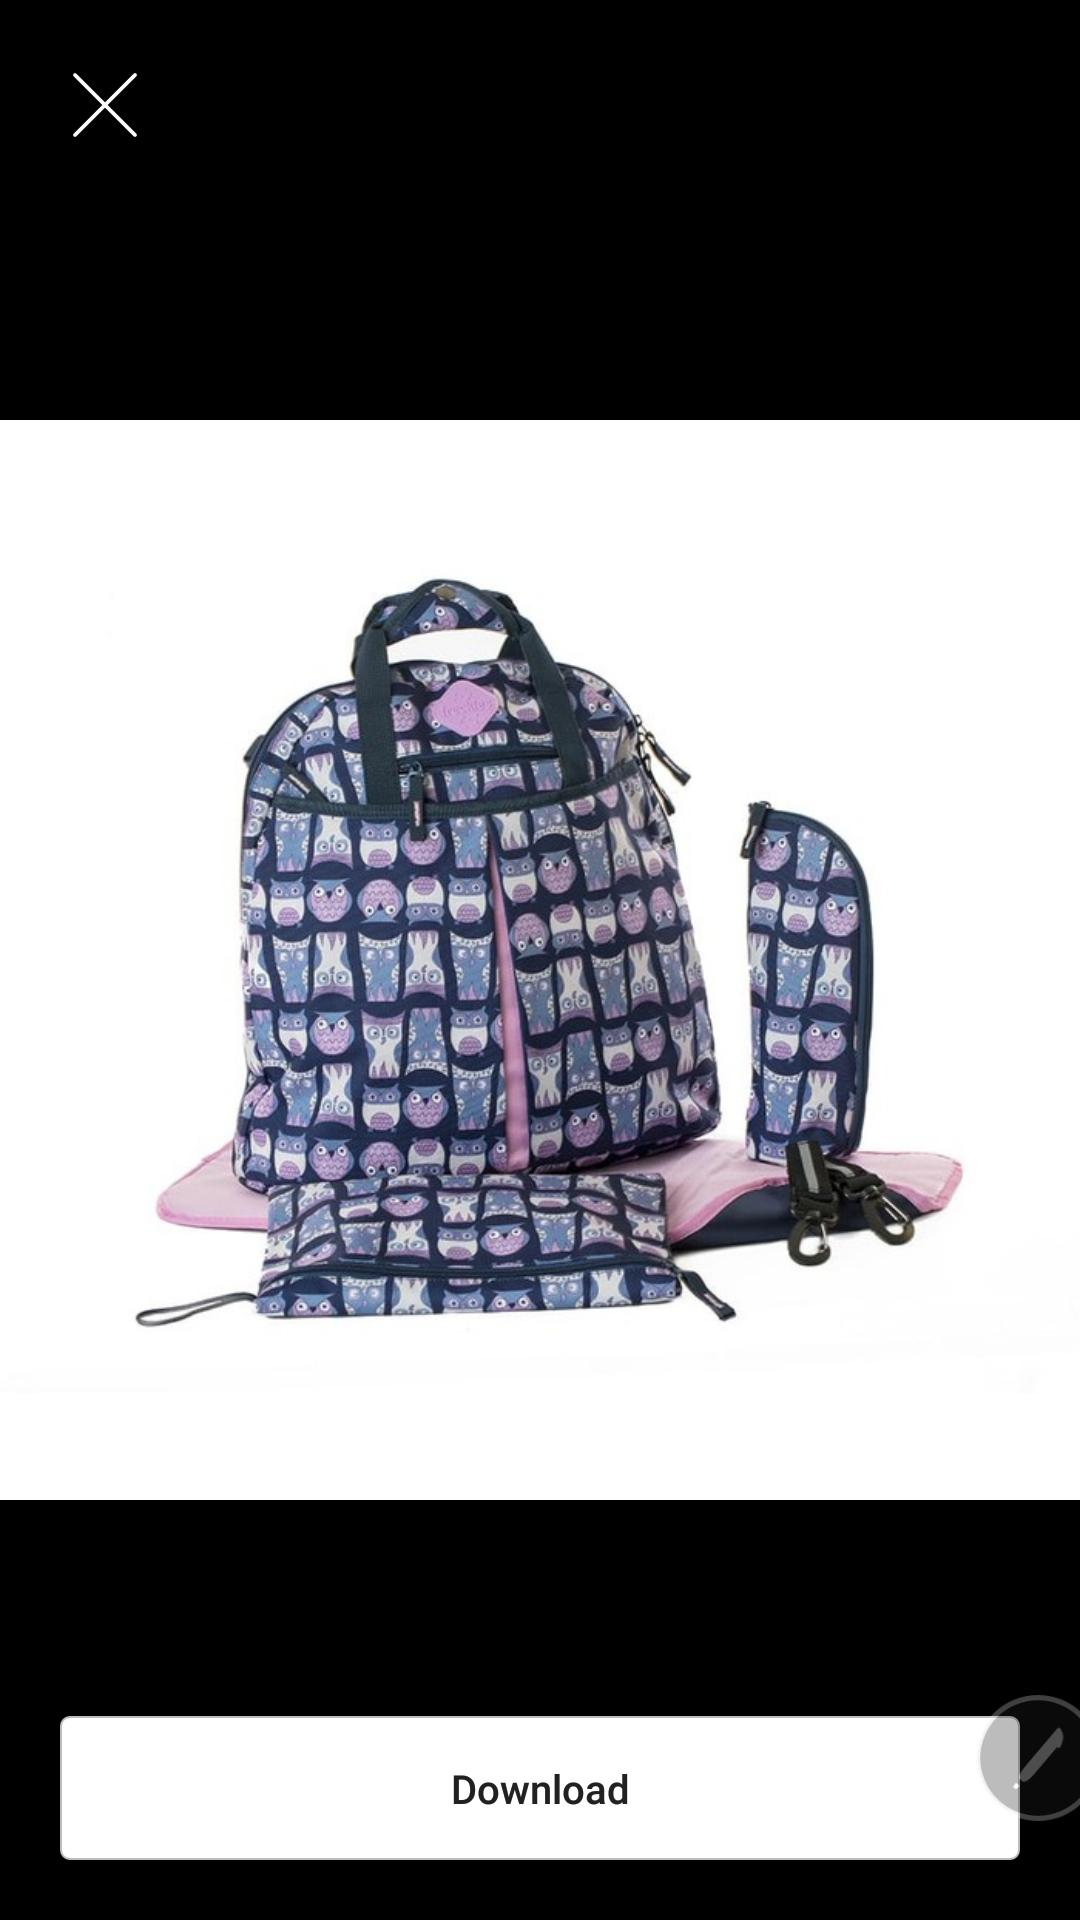 Okiedog Freckles Backpack Rombe Size 36 X 18 40 Cm Color Purple Owl Blue Pink Tas Bayi